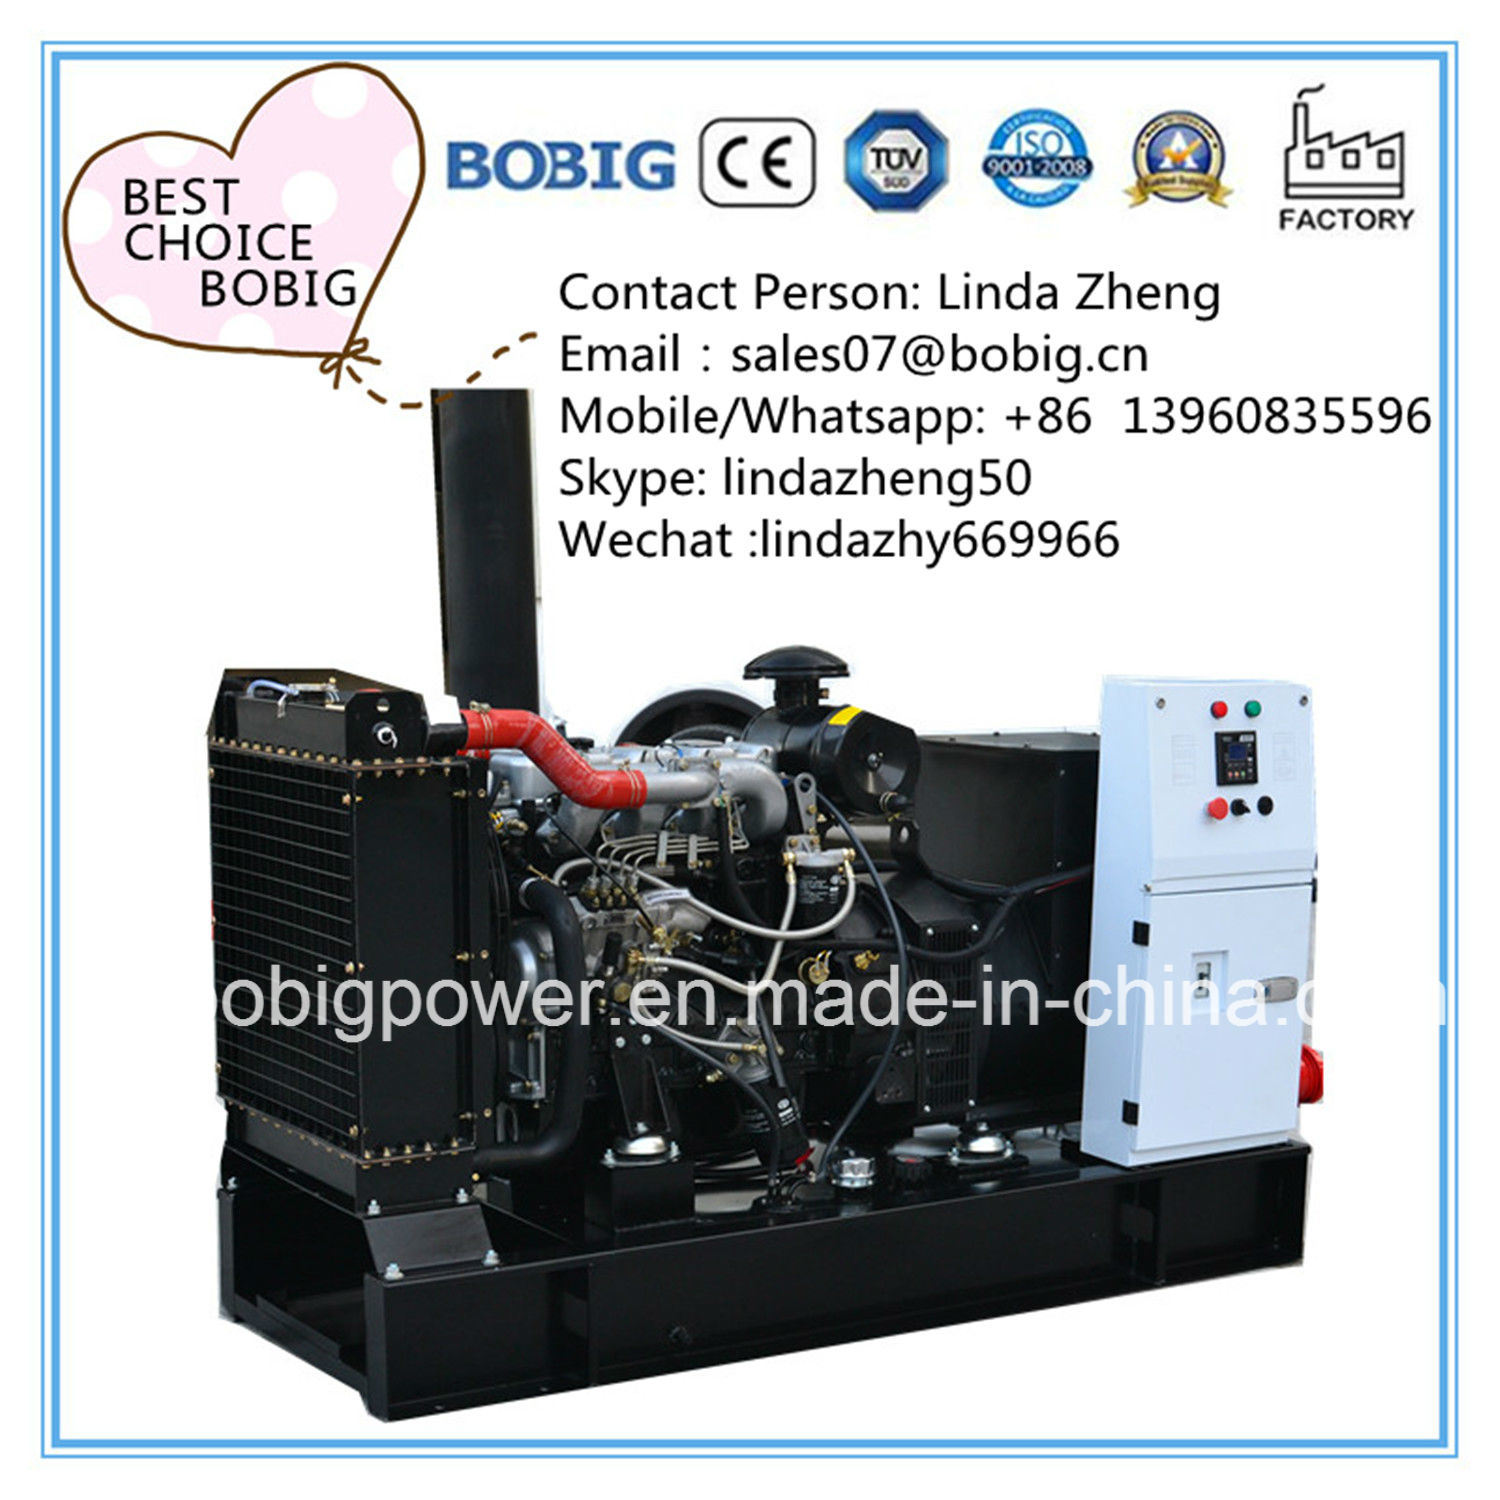 Powered By Yangdong Fujian Bobig Electric Machinery Co Ltd